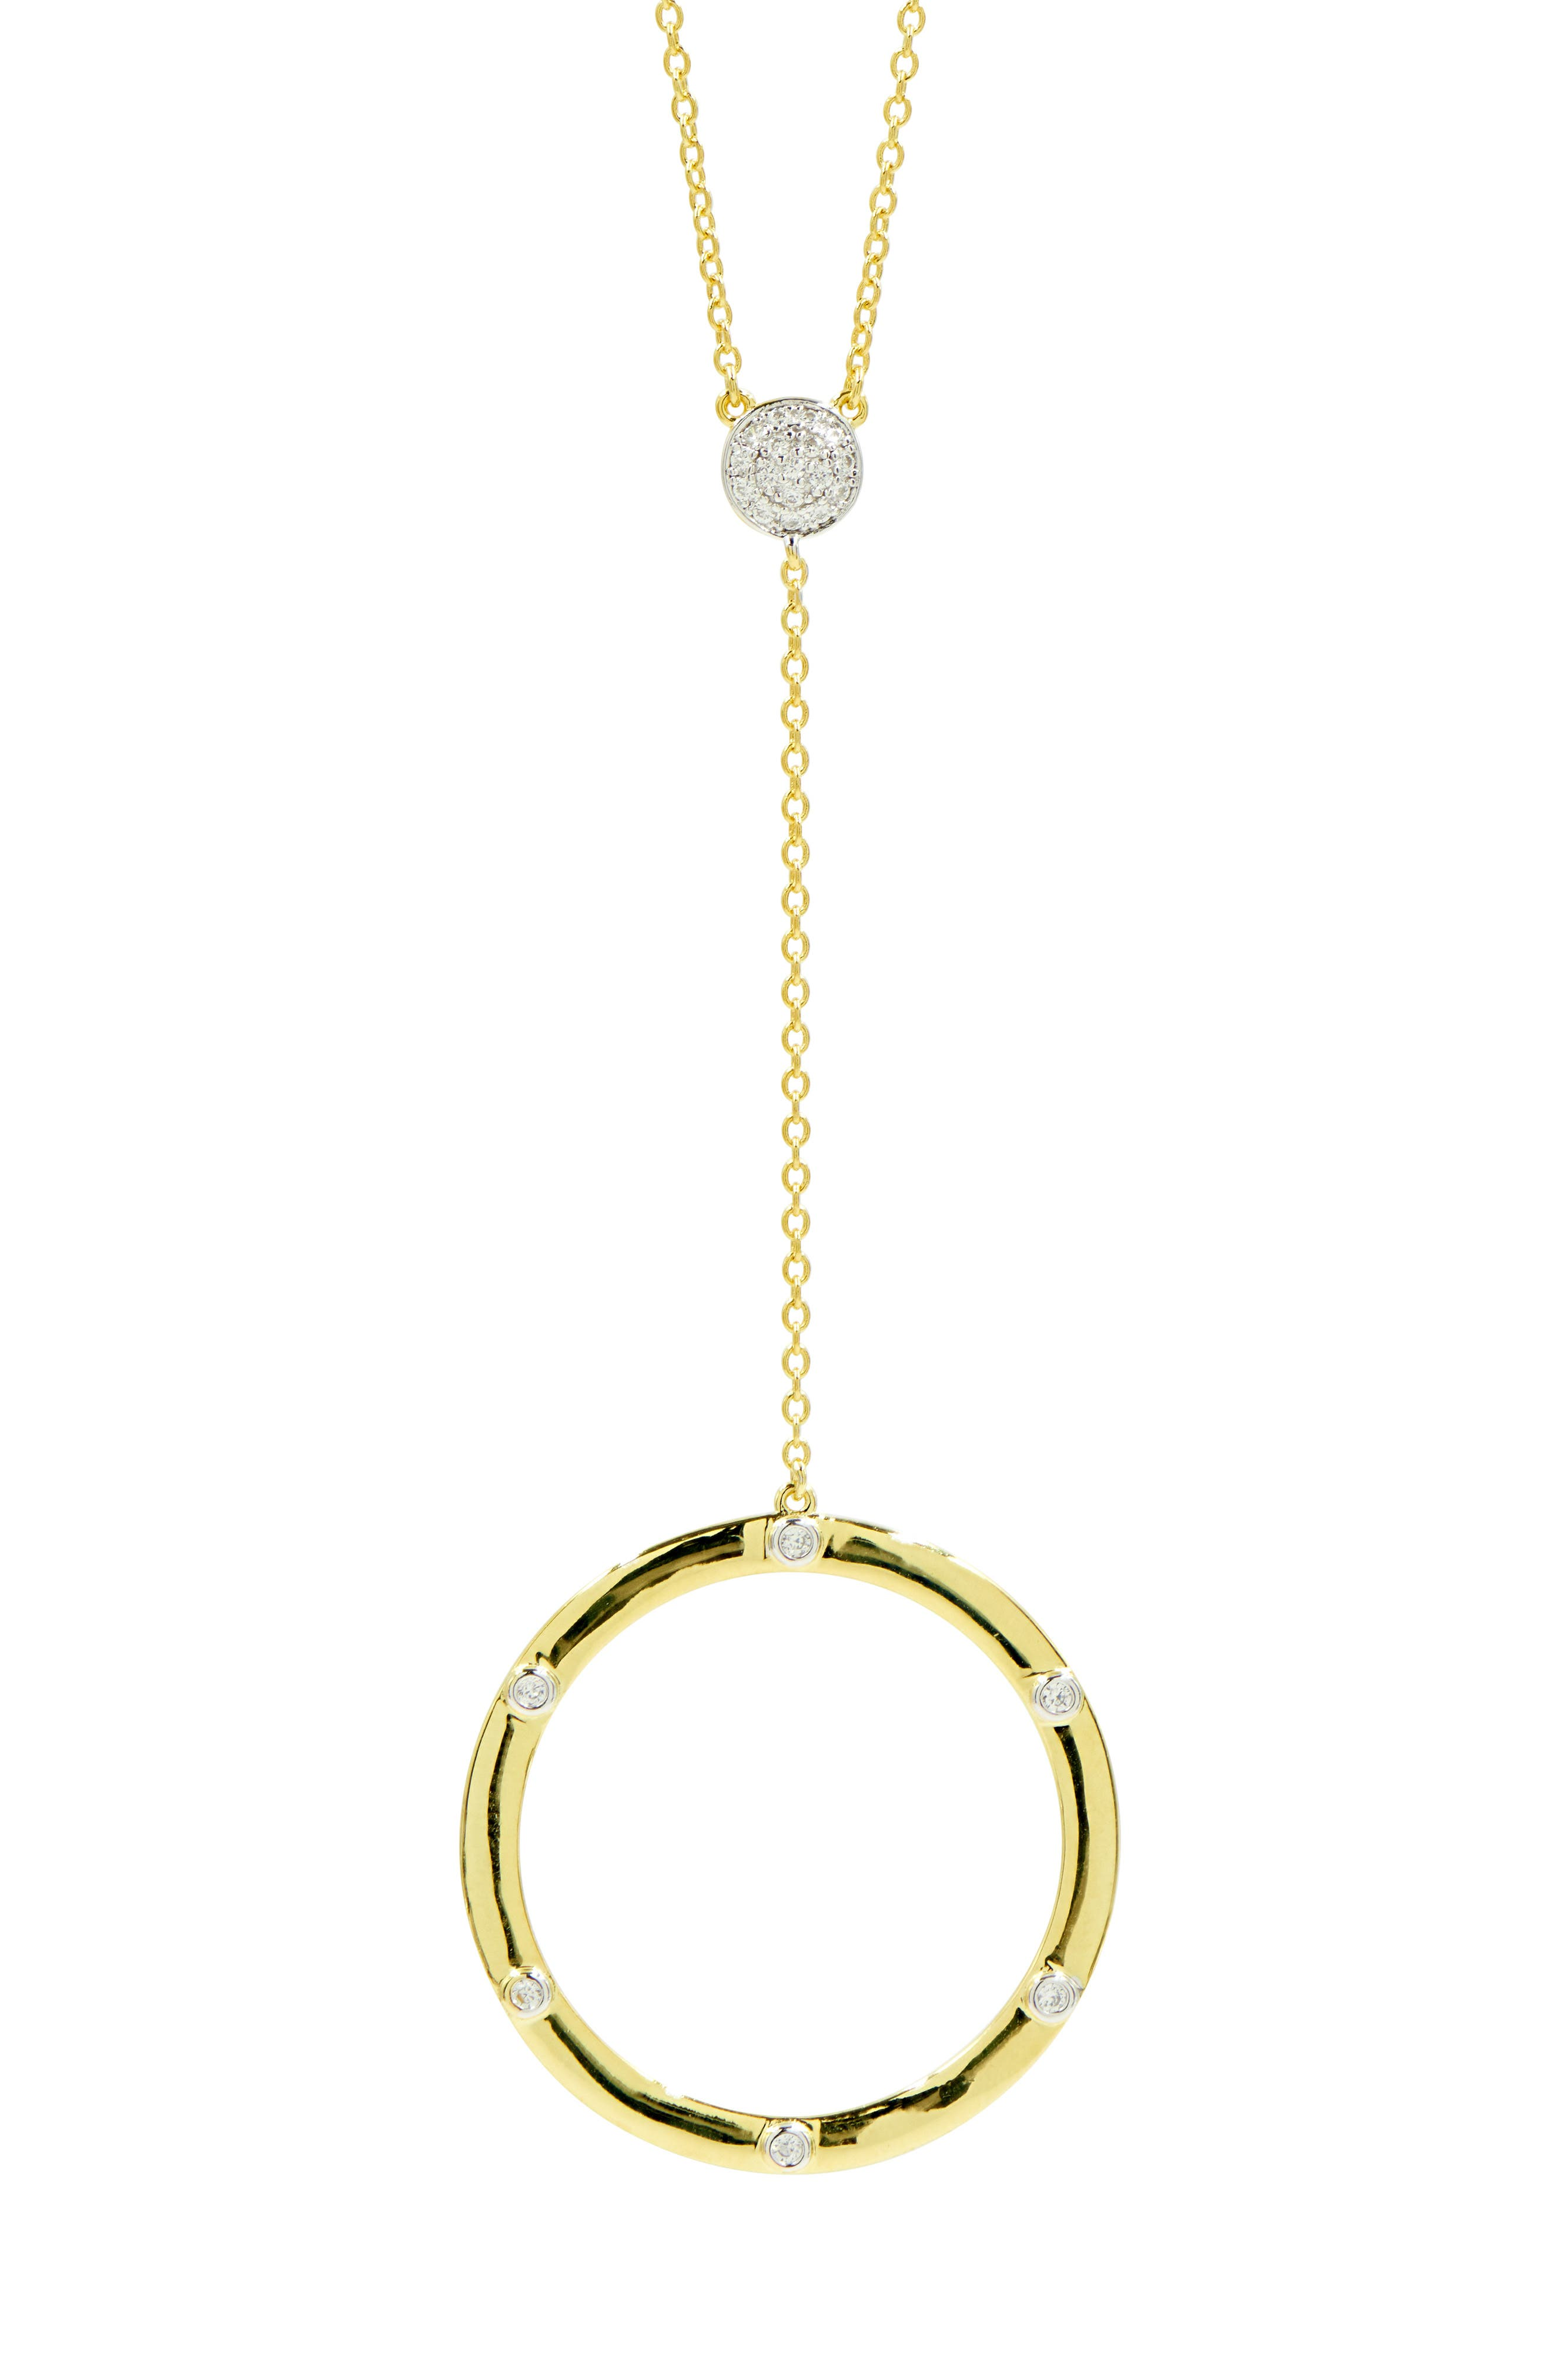 FREIDA ROTHMAN Radiance Circle Pendant Y-Necklace in Gold